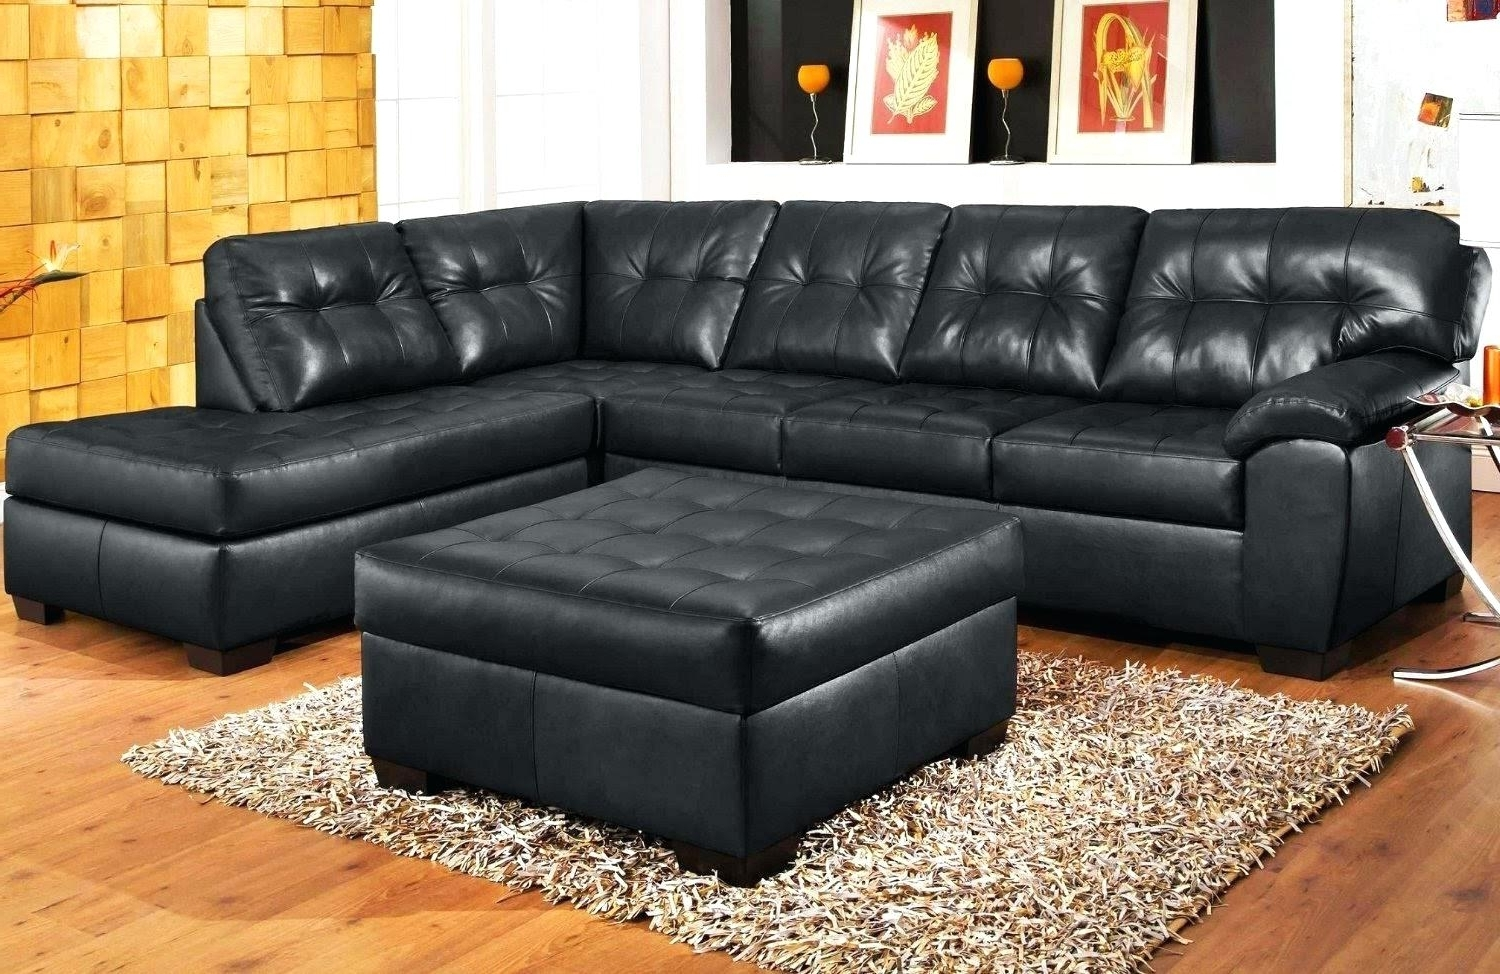 Best And Newest Black Sectional Sofas For Black Sectional Couch Sofa With Chaise For Cheap Leather Recliner (View 2 of 20)